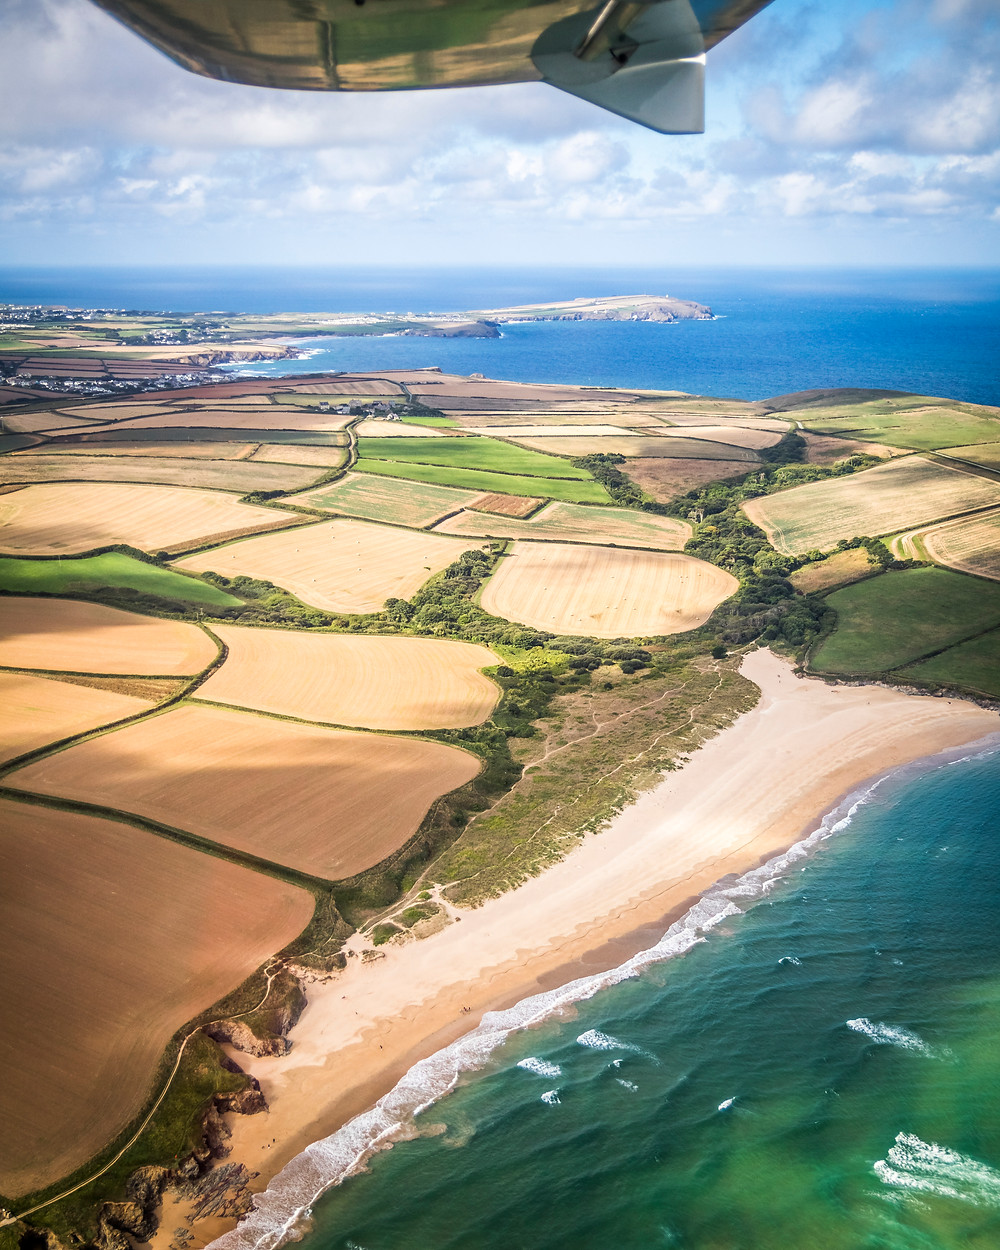 Aerial View Of Tregirls Beach, Cornwall From The Air